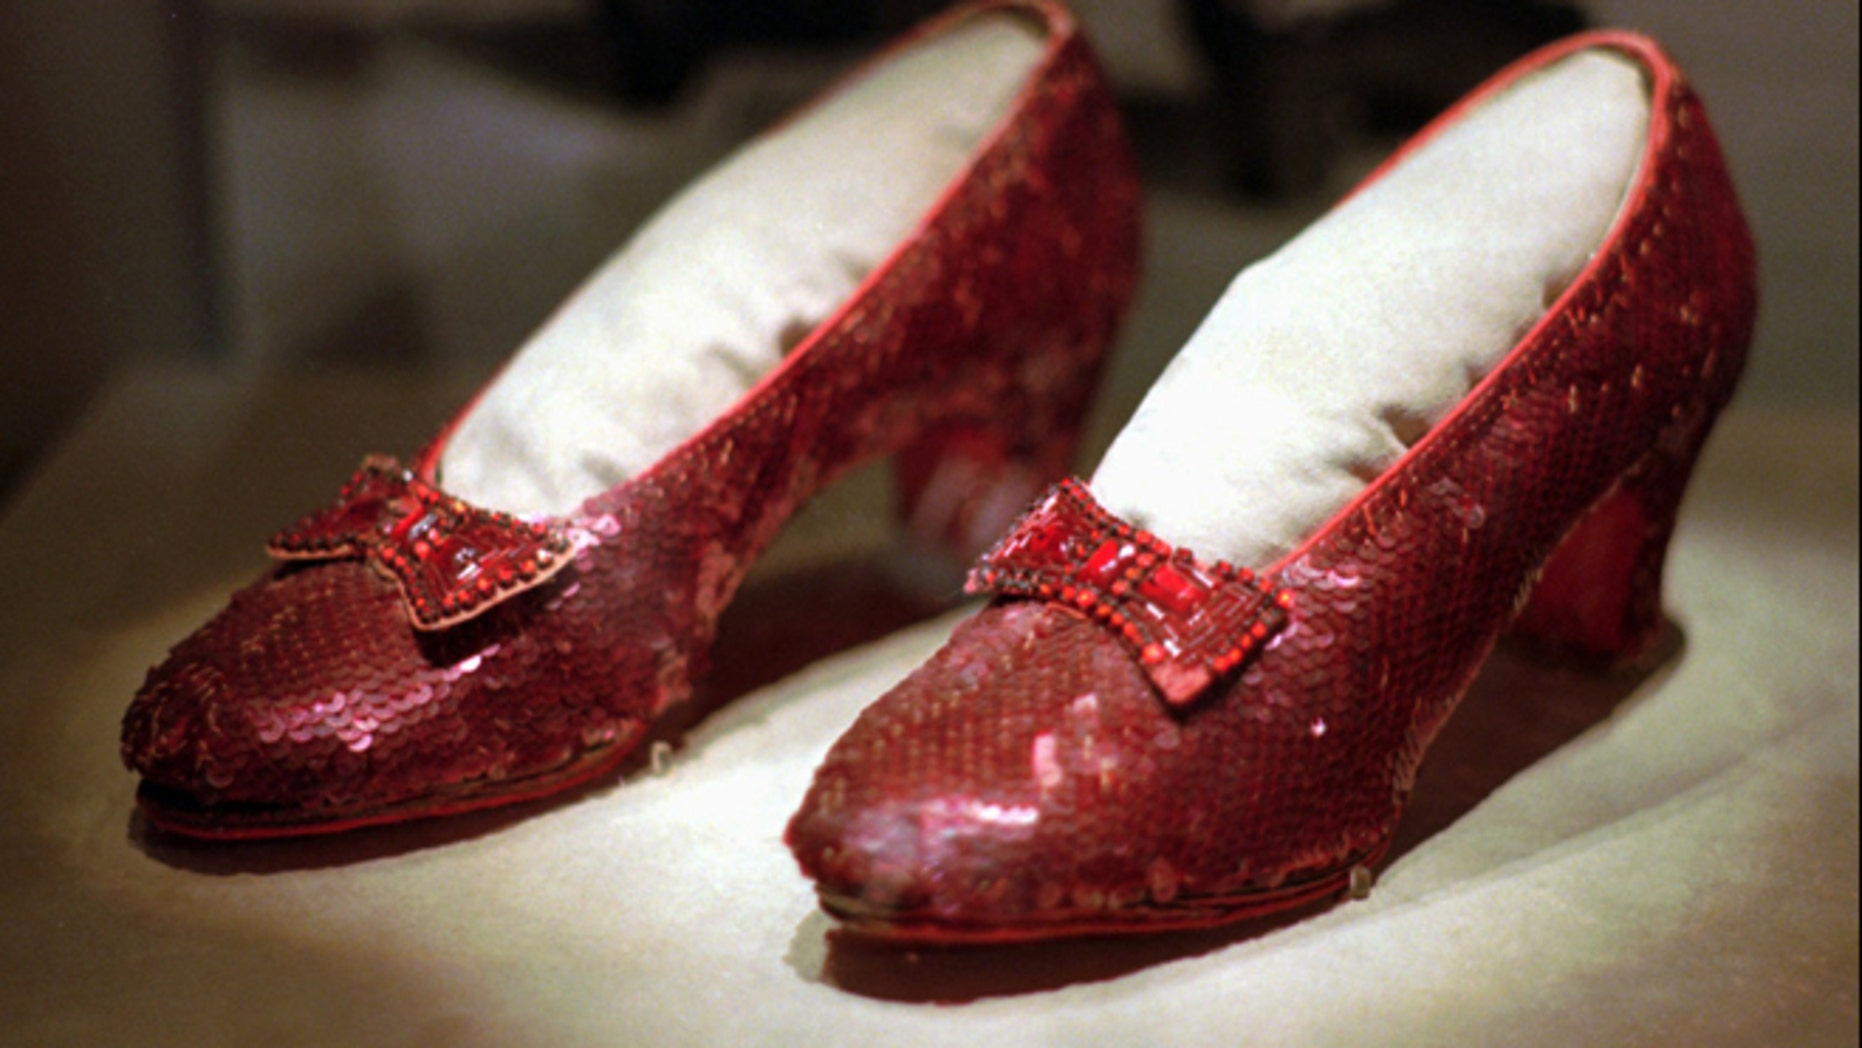 """April 10, 1996: This file photo shows one of the four pairs of ruby slippers worn by Judy Garland in the 1939 film """"The Wizard of Oz"""" on display during a media tour of the """"America's Smithsonian"""" traveling exhibition in Kansas City, Mo."""